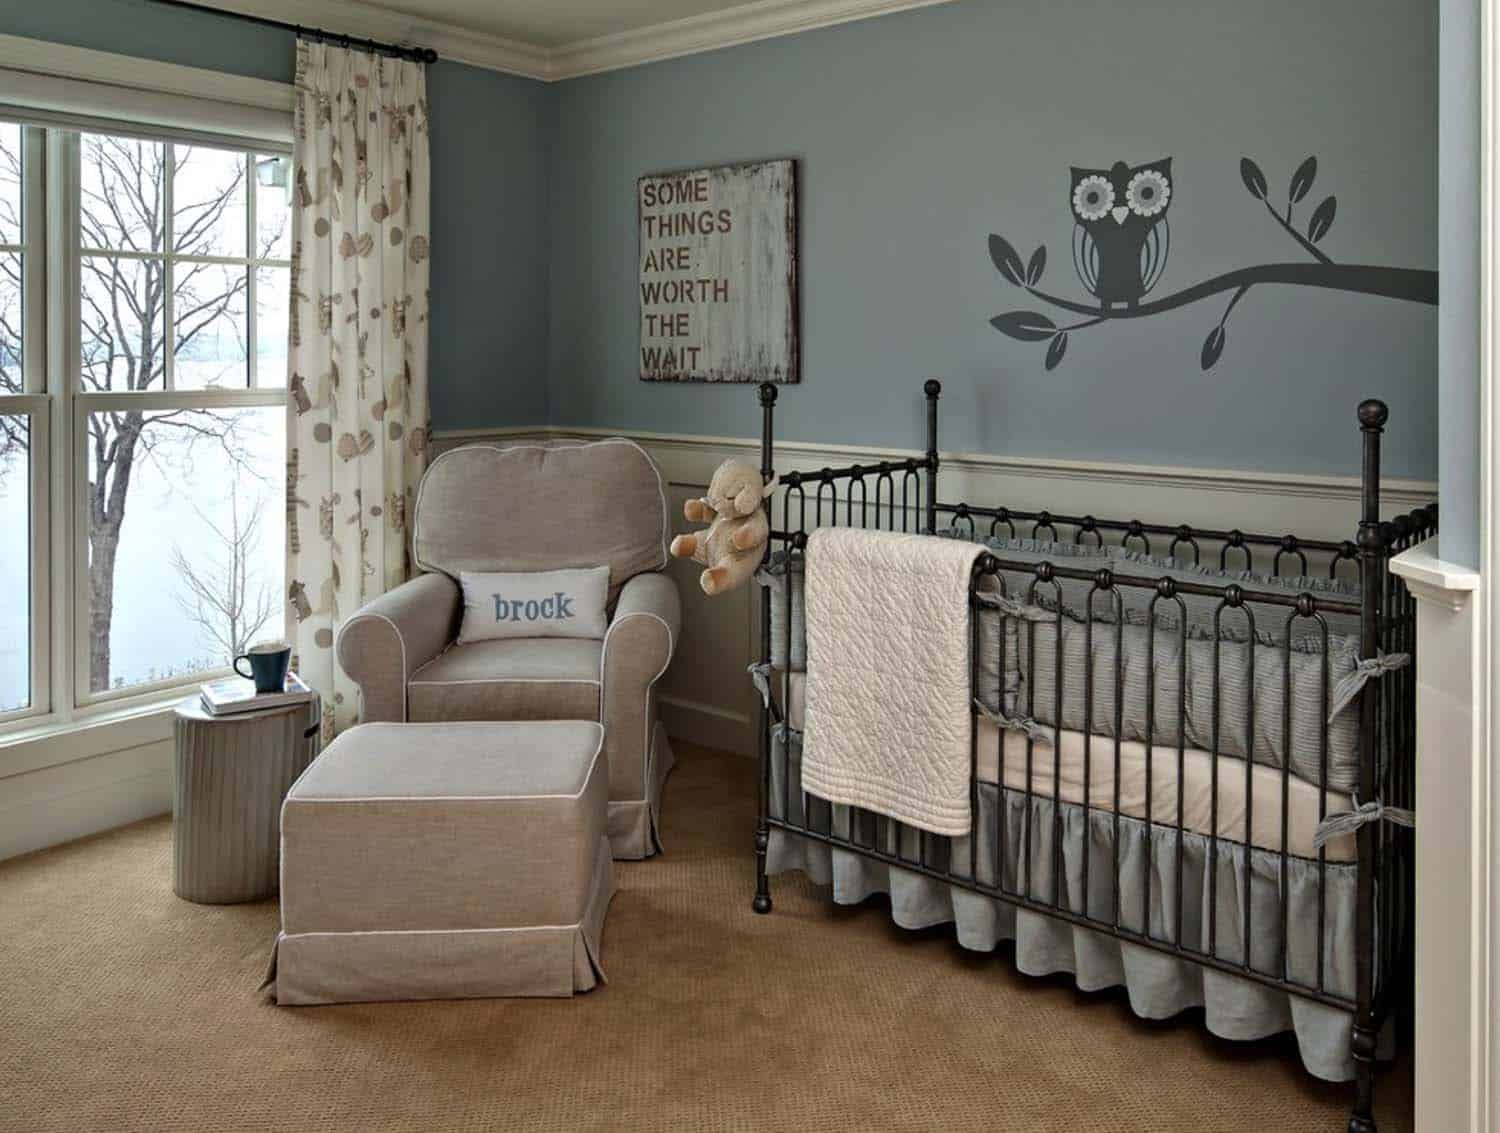 Stylish Nursery Decorating Ideas-13-1 Kindesign